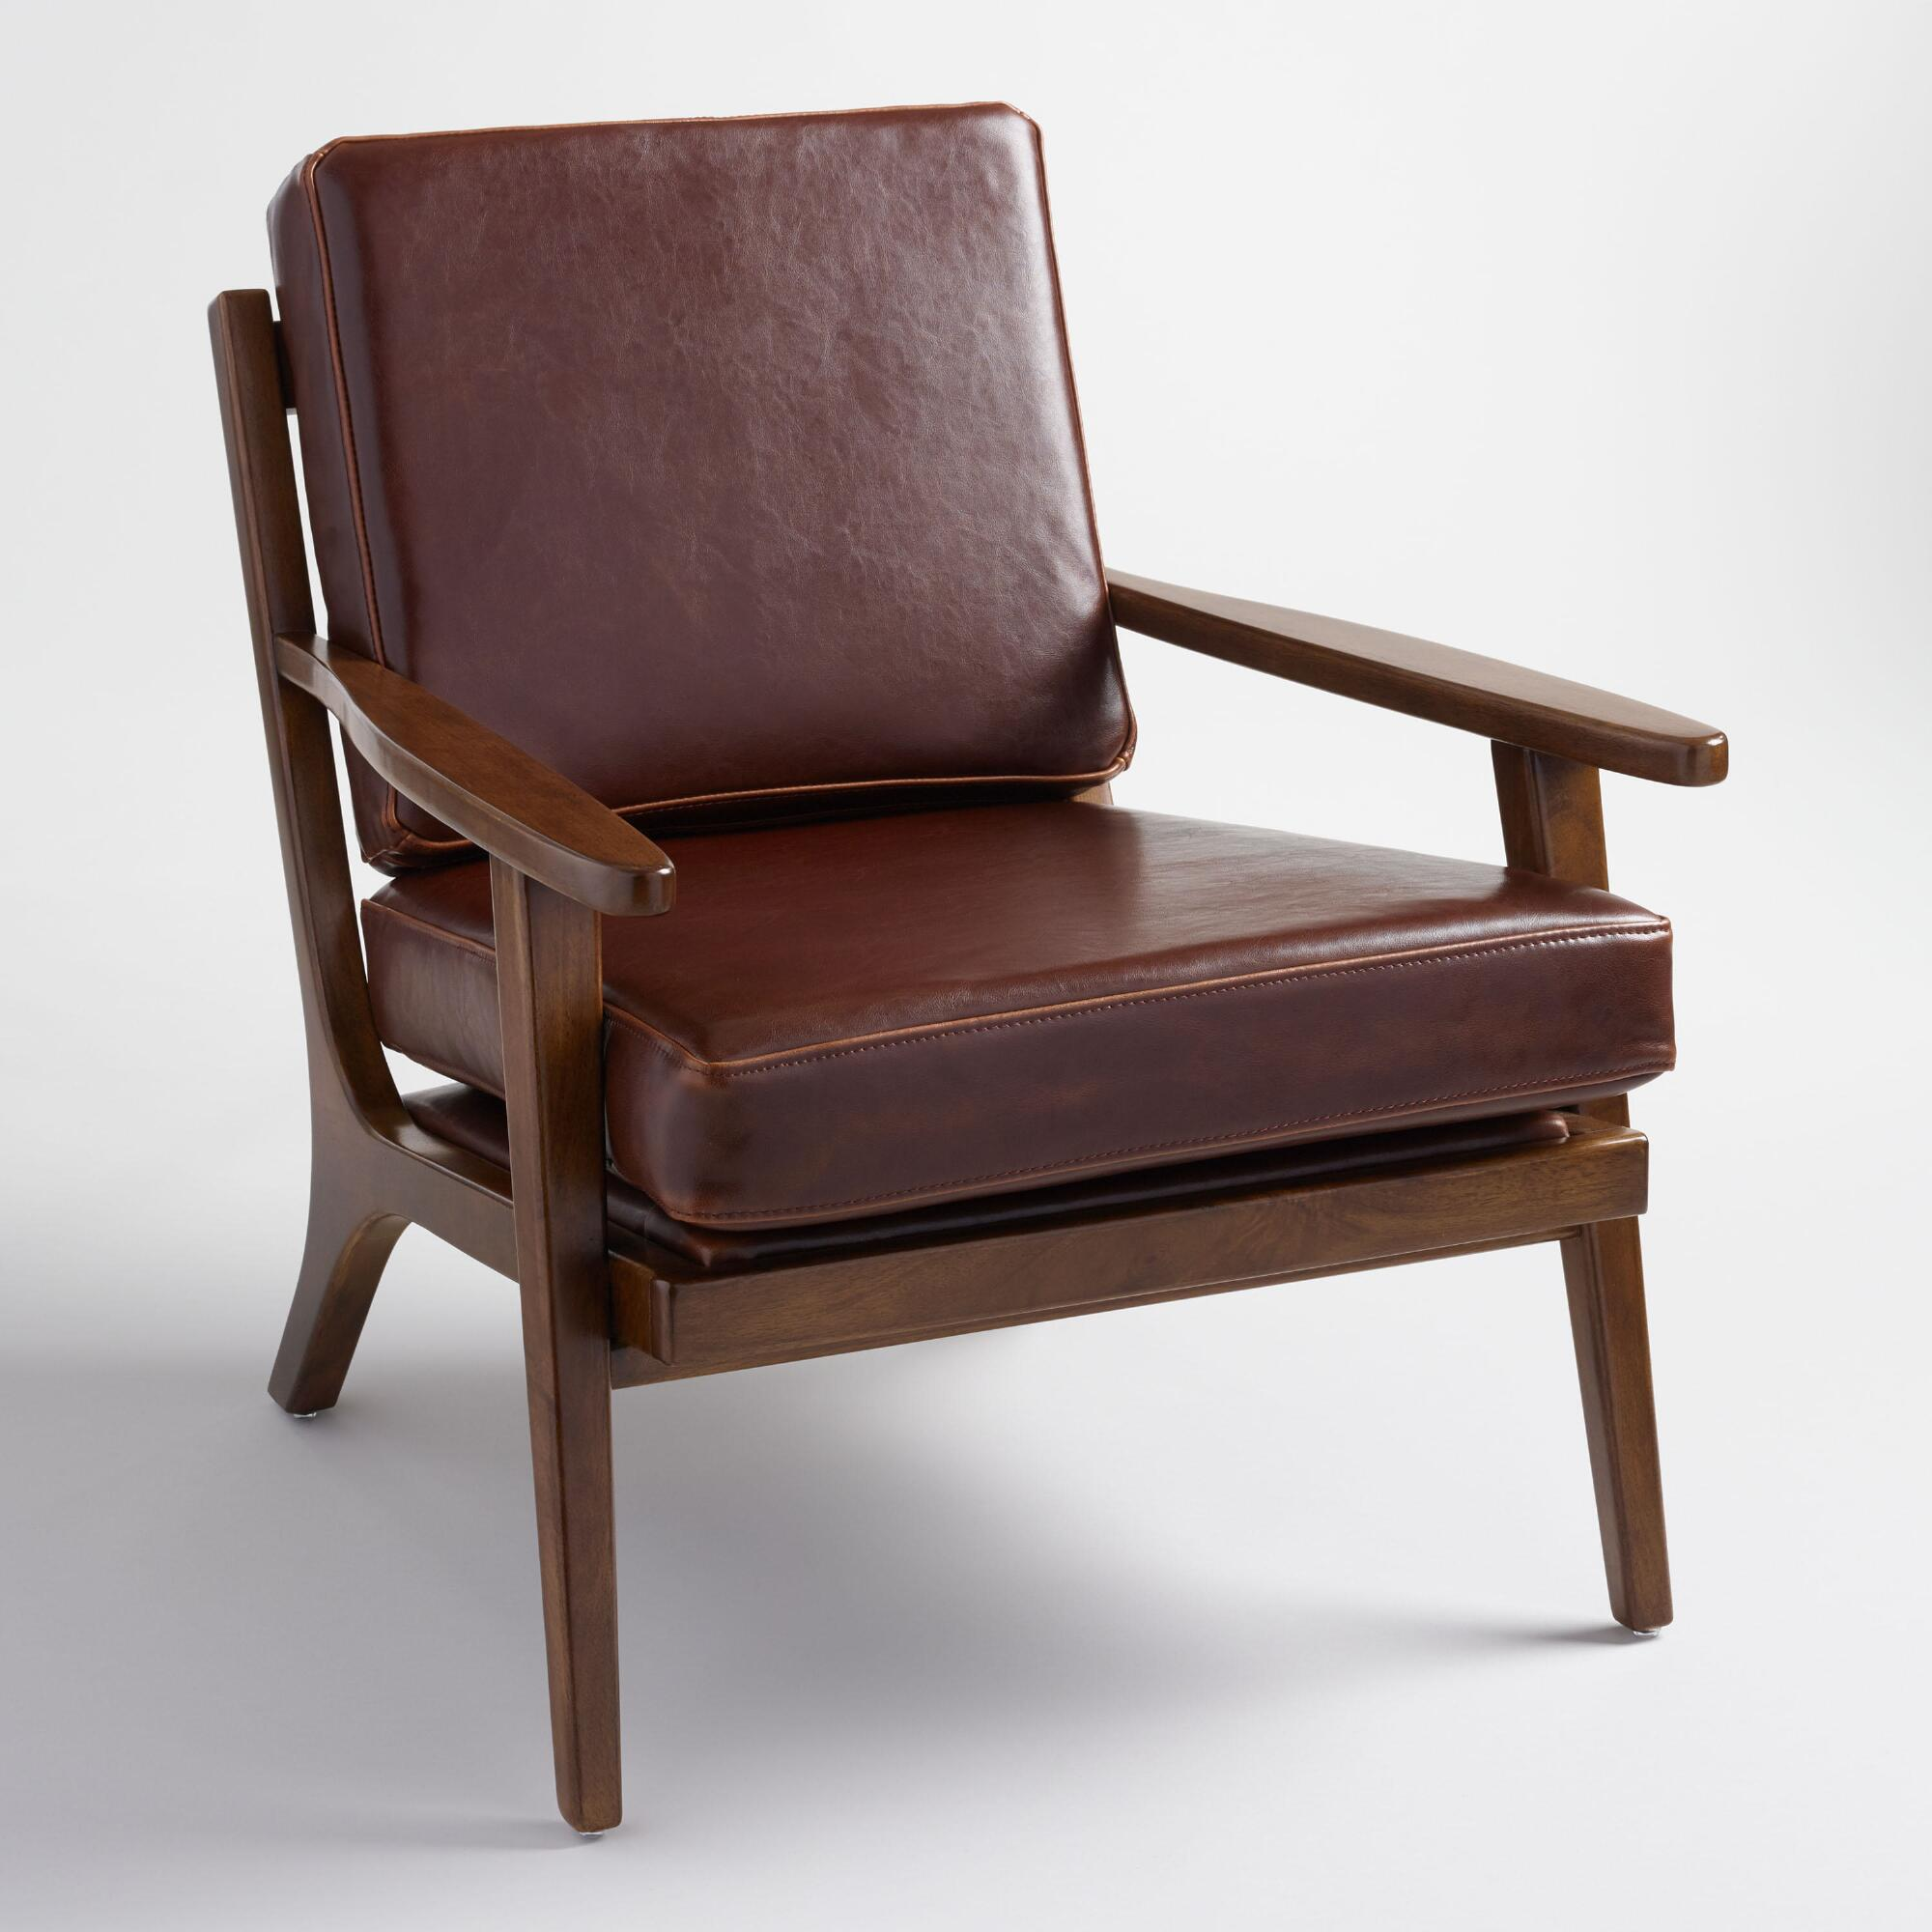 whiskey bi cast leather xander armchair - Living Room Chairs